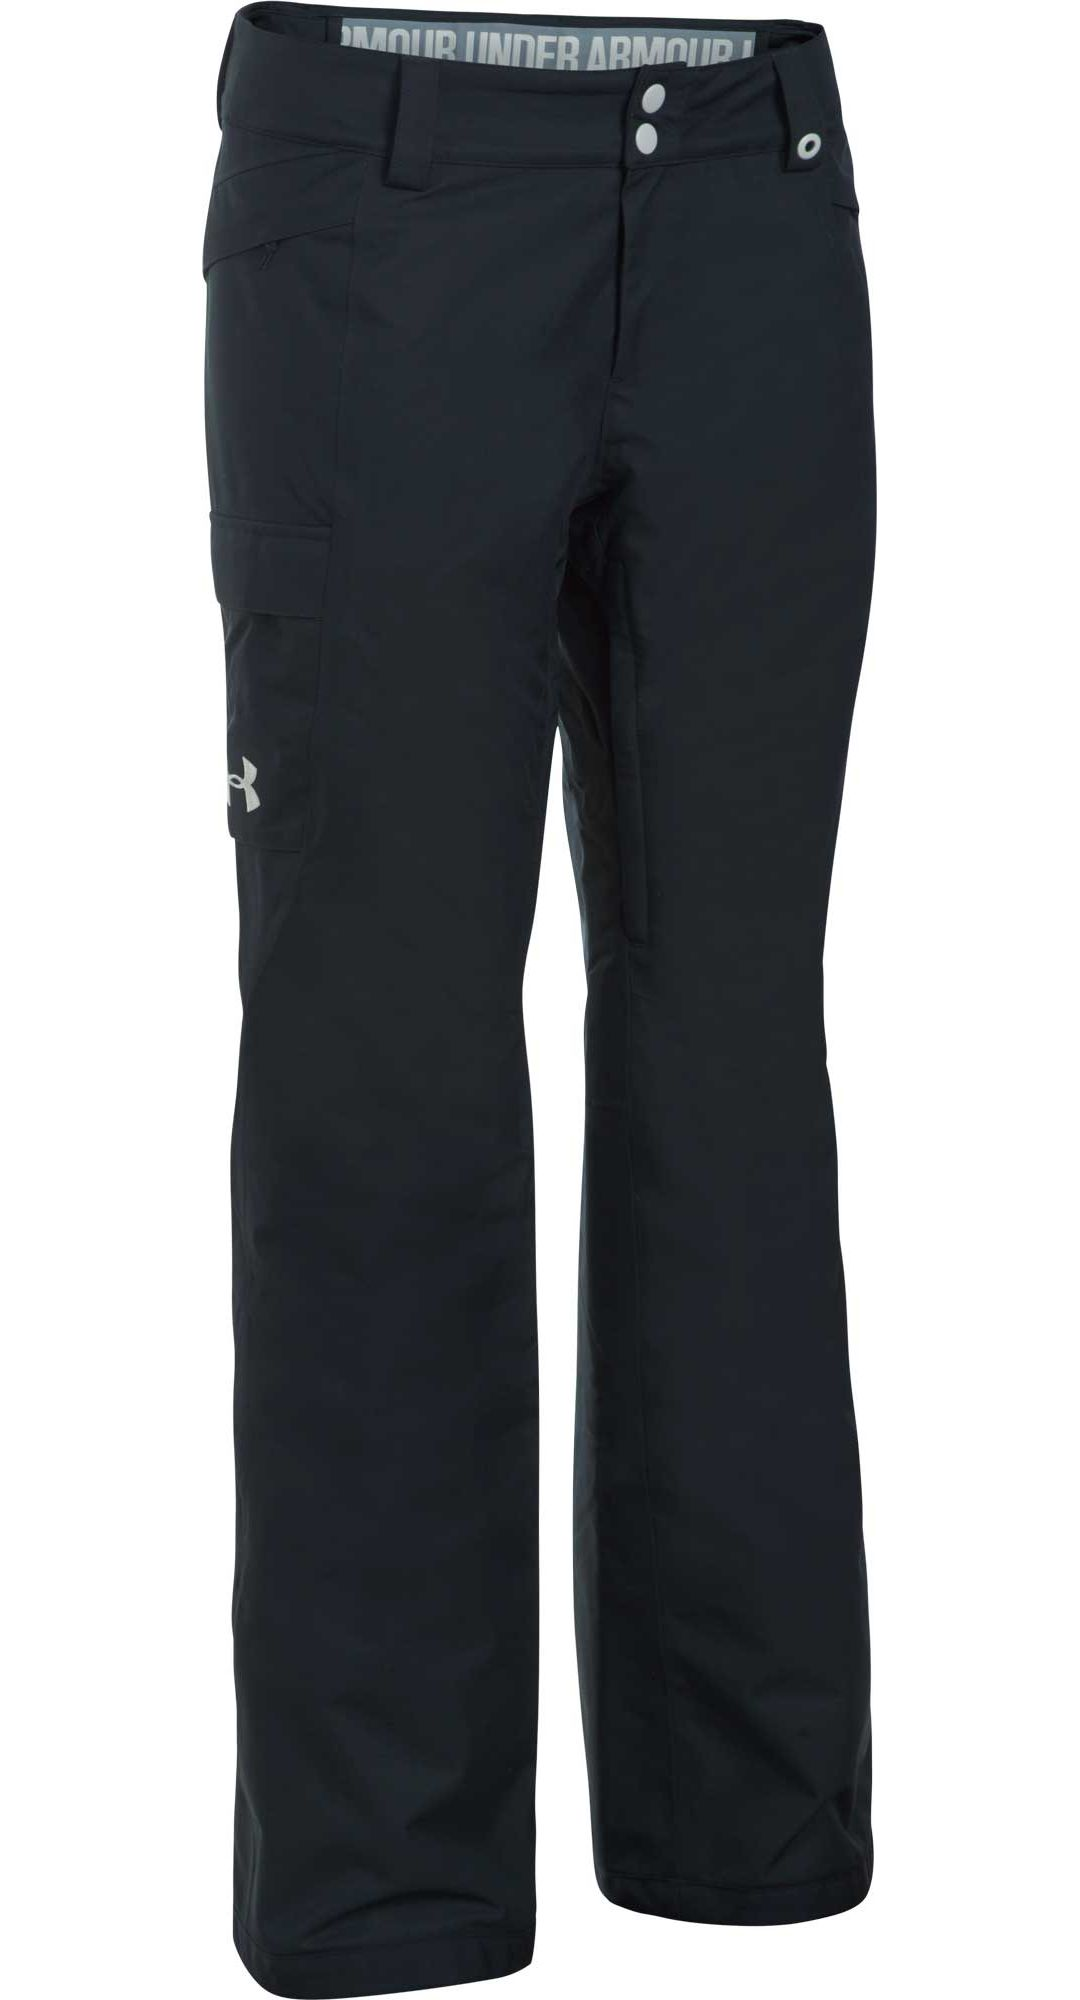 579902357 Under Armour Women's ColdGear Infrared Chutes Insulated Pants.  noImageFound. Previous. 1. 2. 3